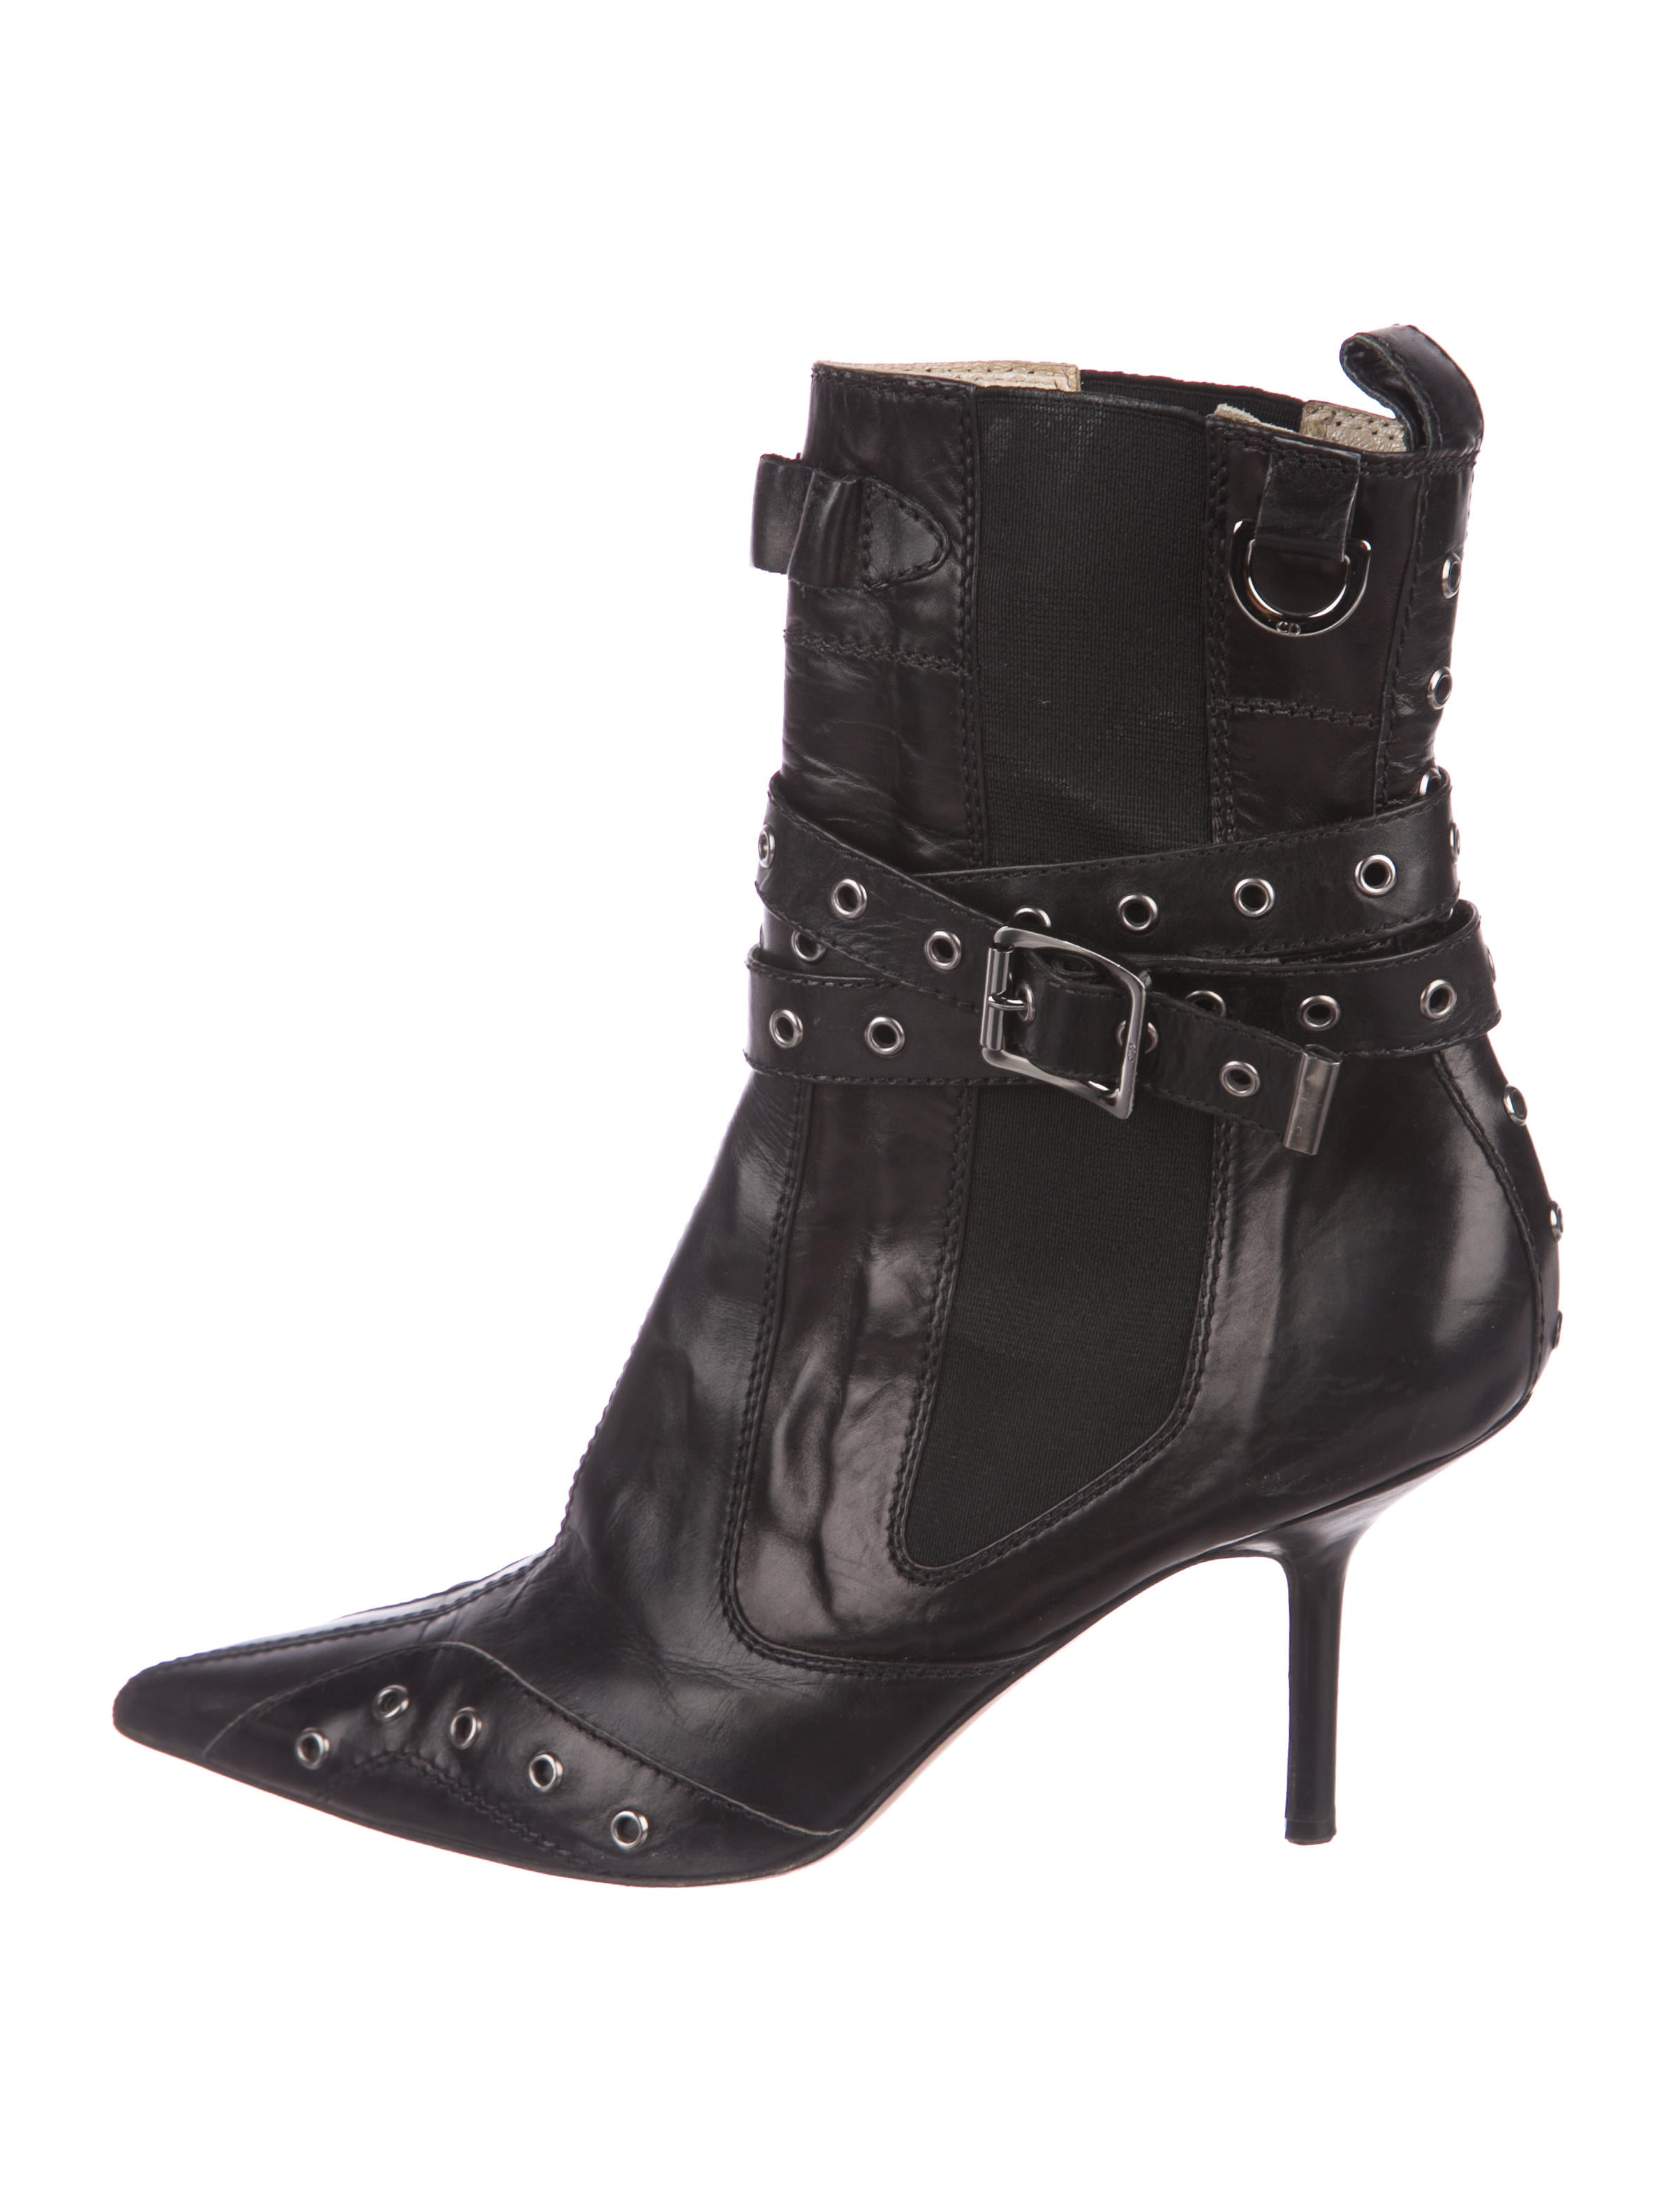 Christian Dior Leather Pointed-Toe Booties 2014 newest online finishline cheap online best place to buy discount geniue stockist pay with paypal online UZDkORcms